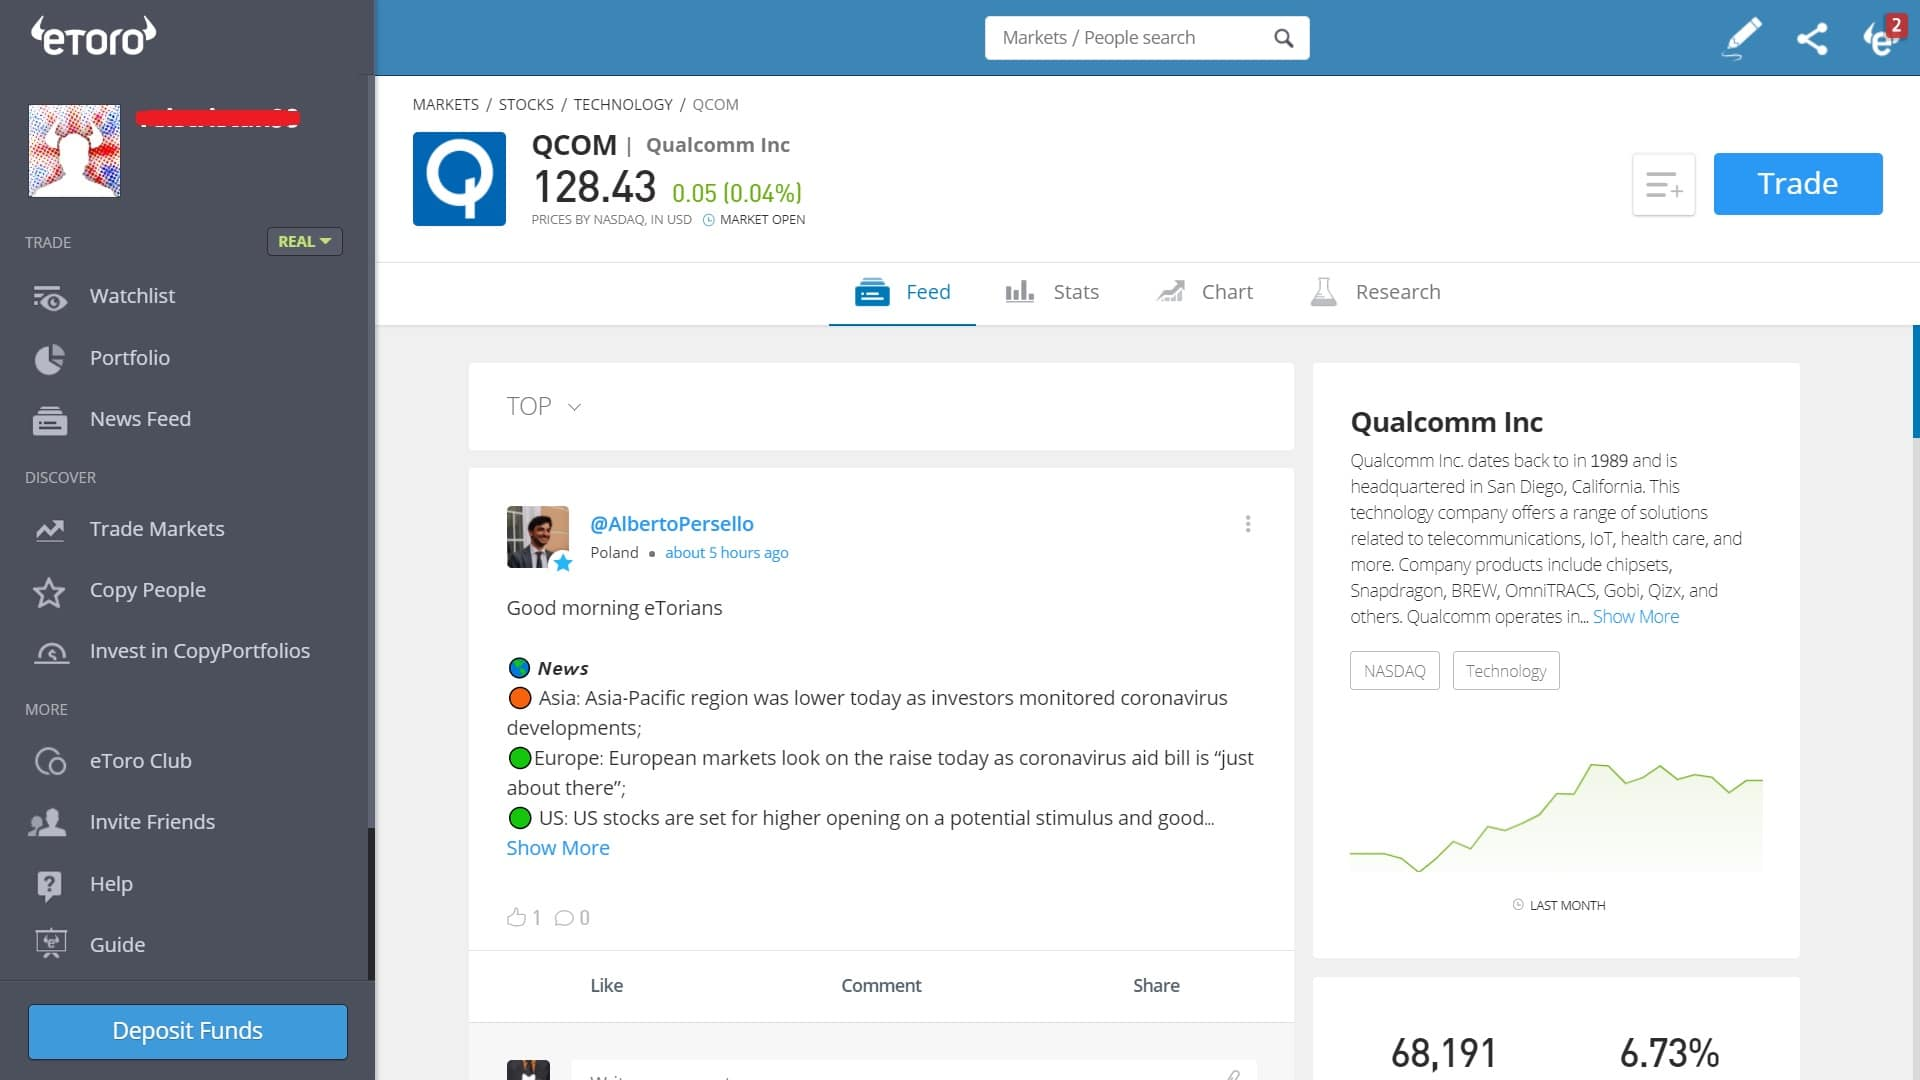 Qualcomm stock trading on eToro's platform